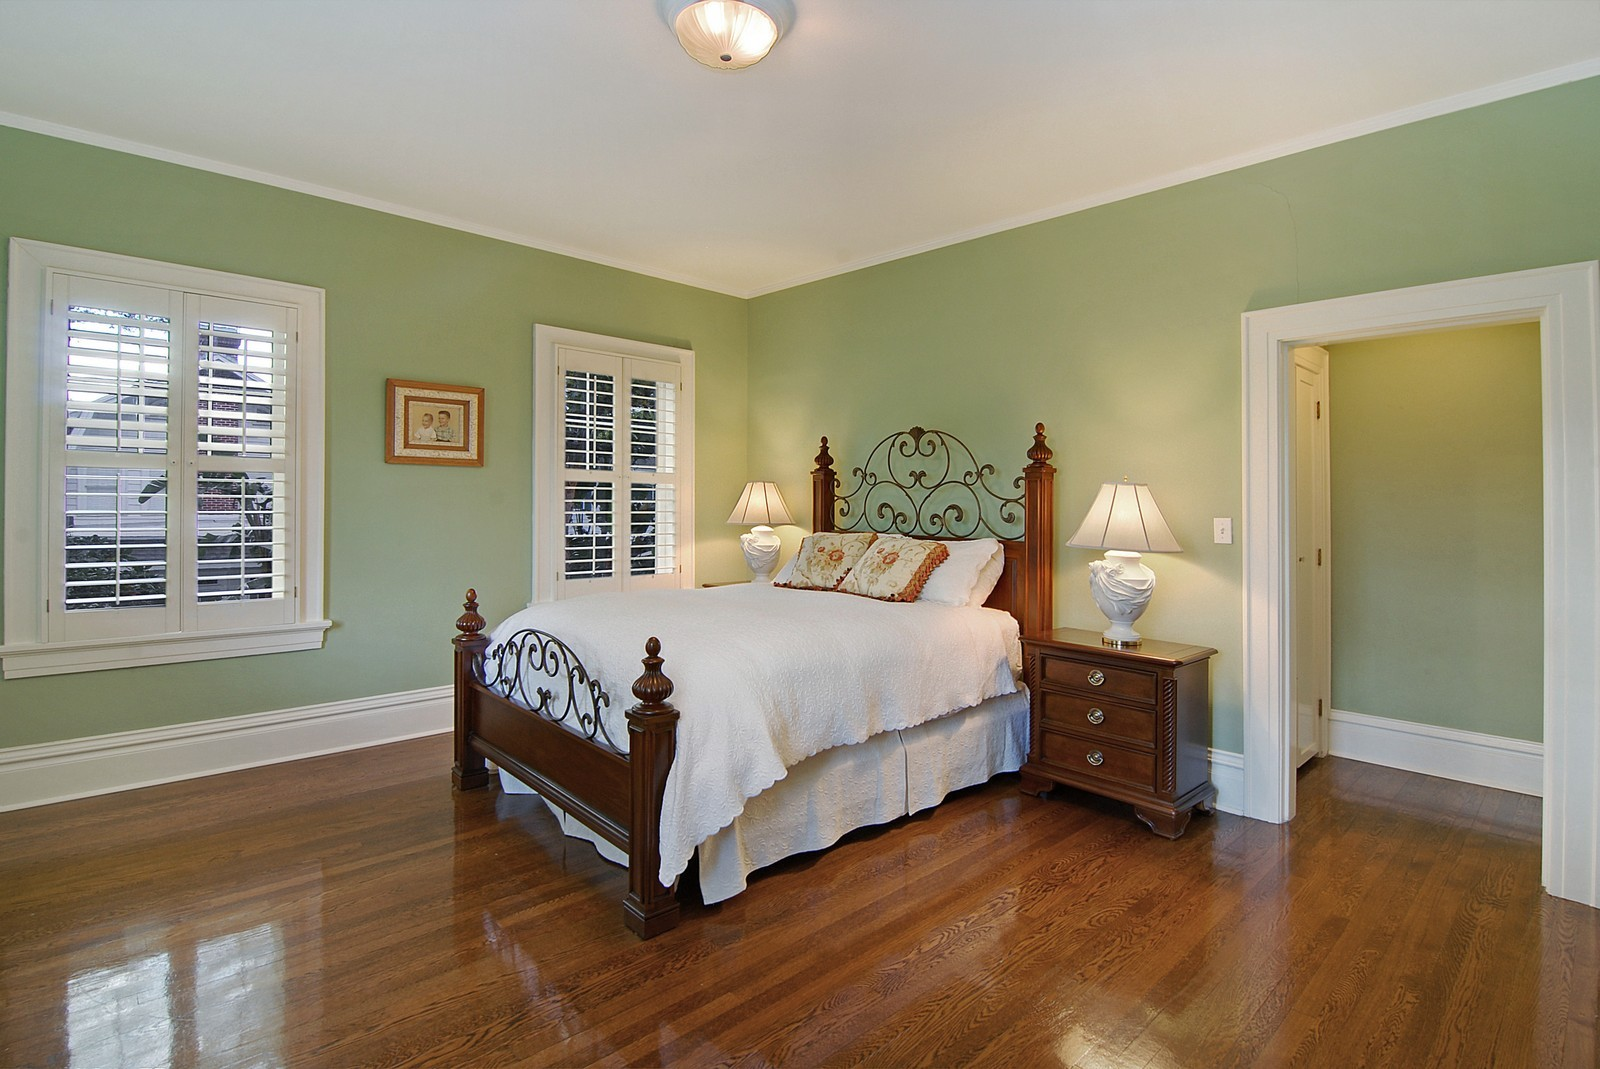 Real Estate Photography - 2223 S. Bendelow Trail, Tampa, FL, 33629 - Guest Bedroom